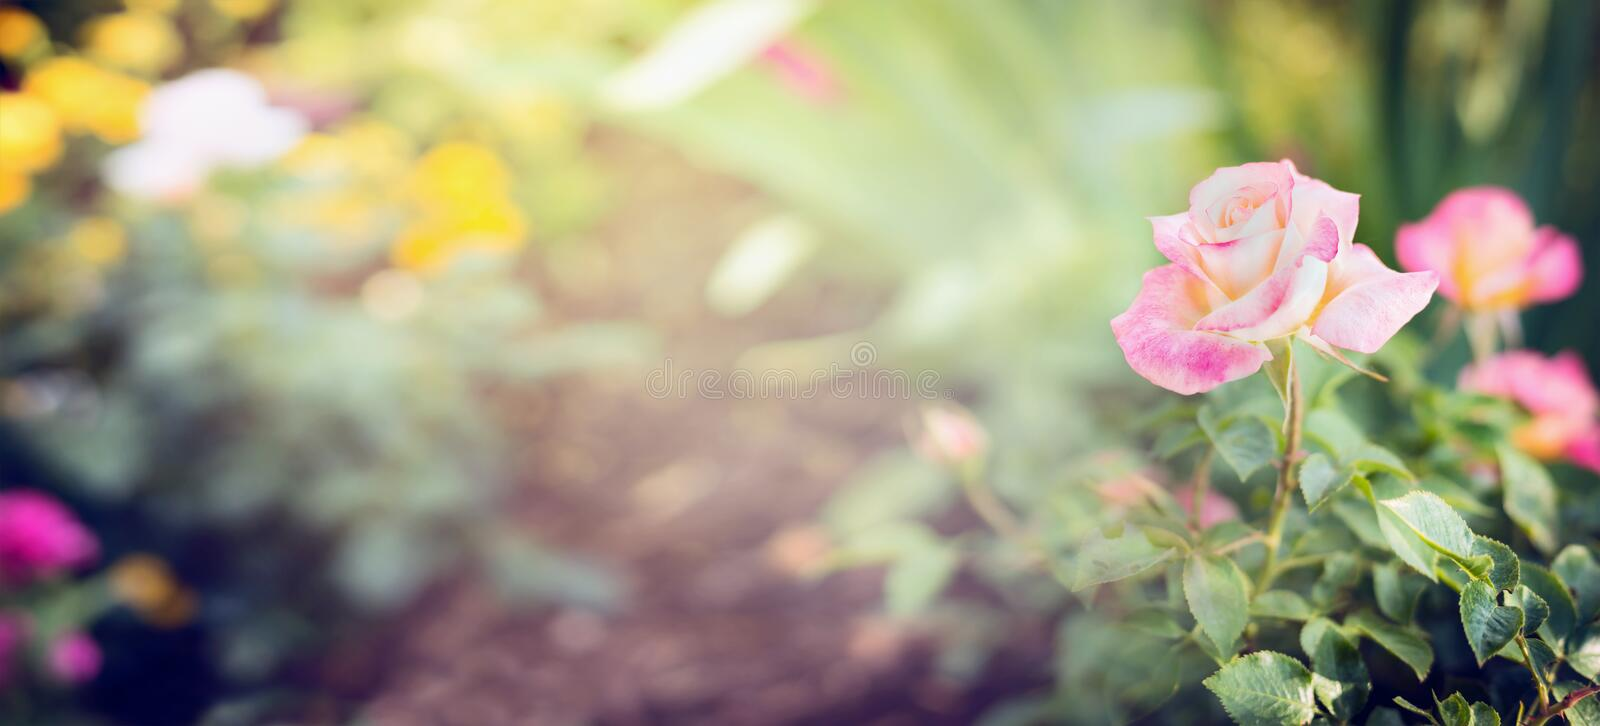 Pink pale rose in garden or park on bed of flowers, banner for website royalty free stock image